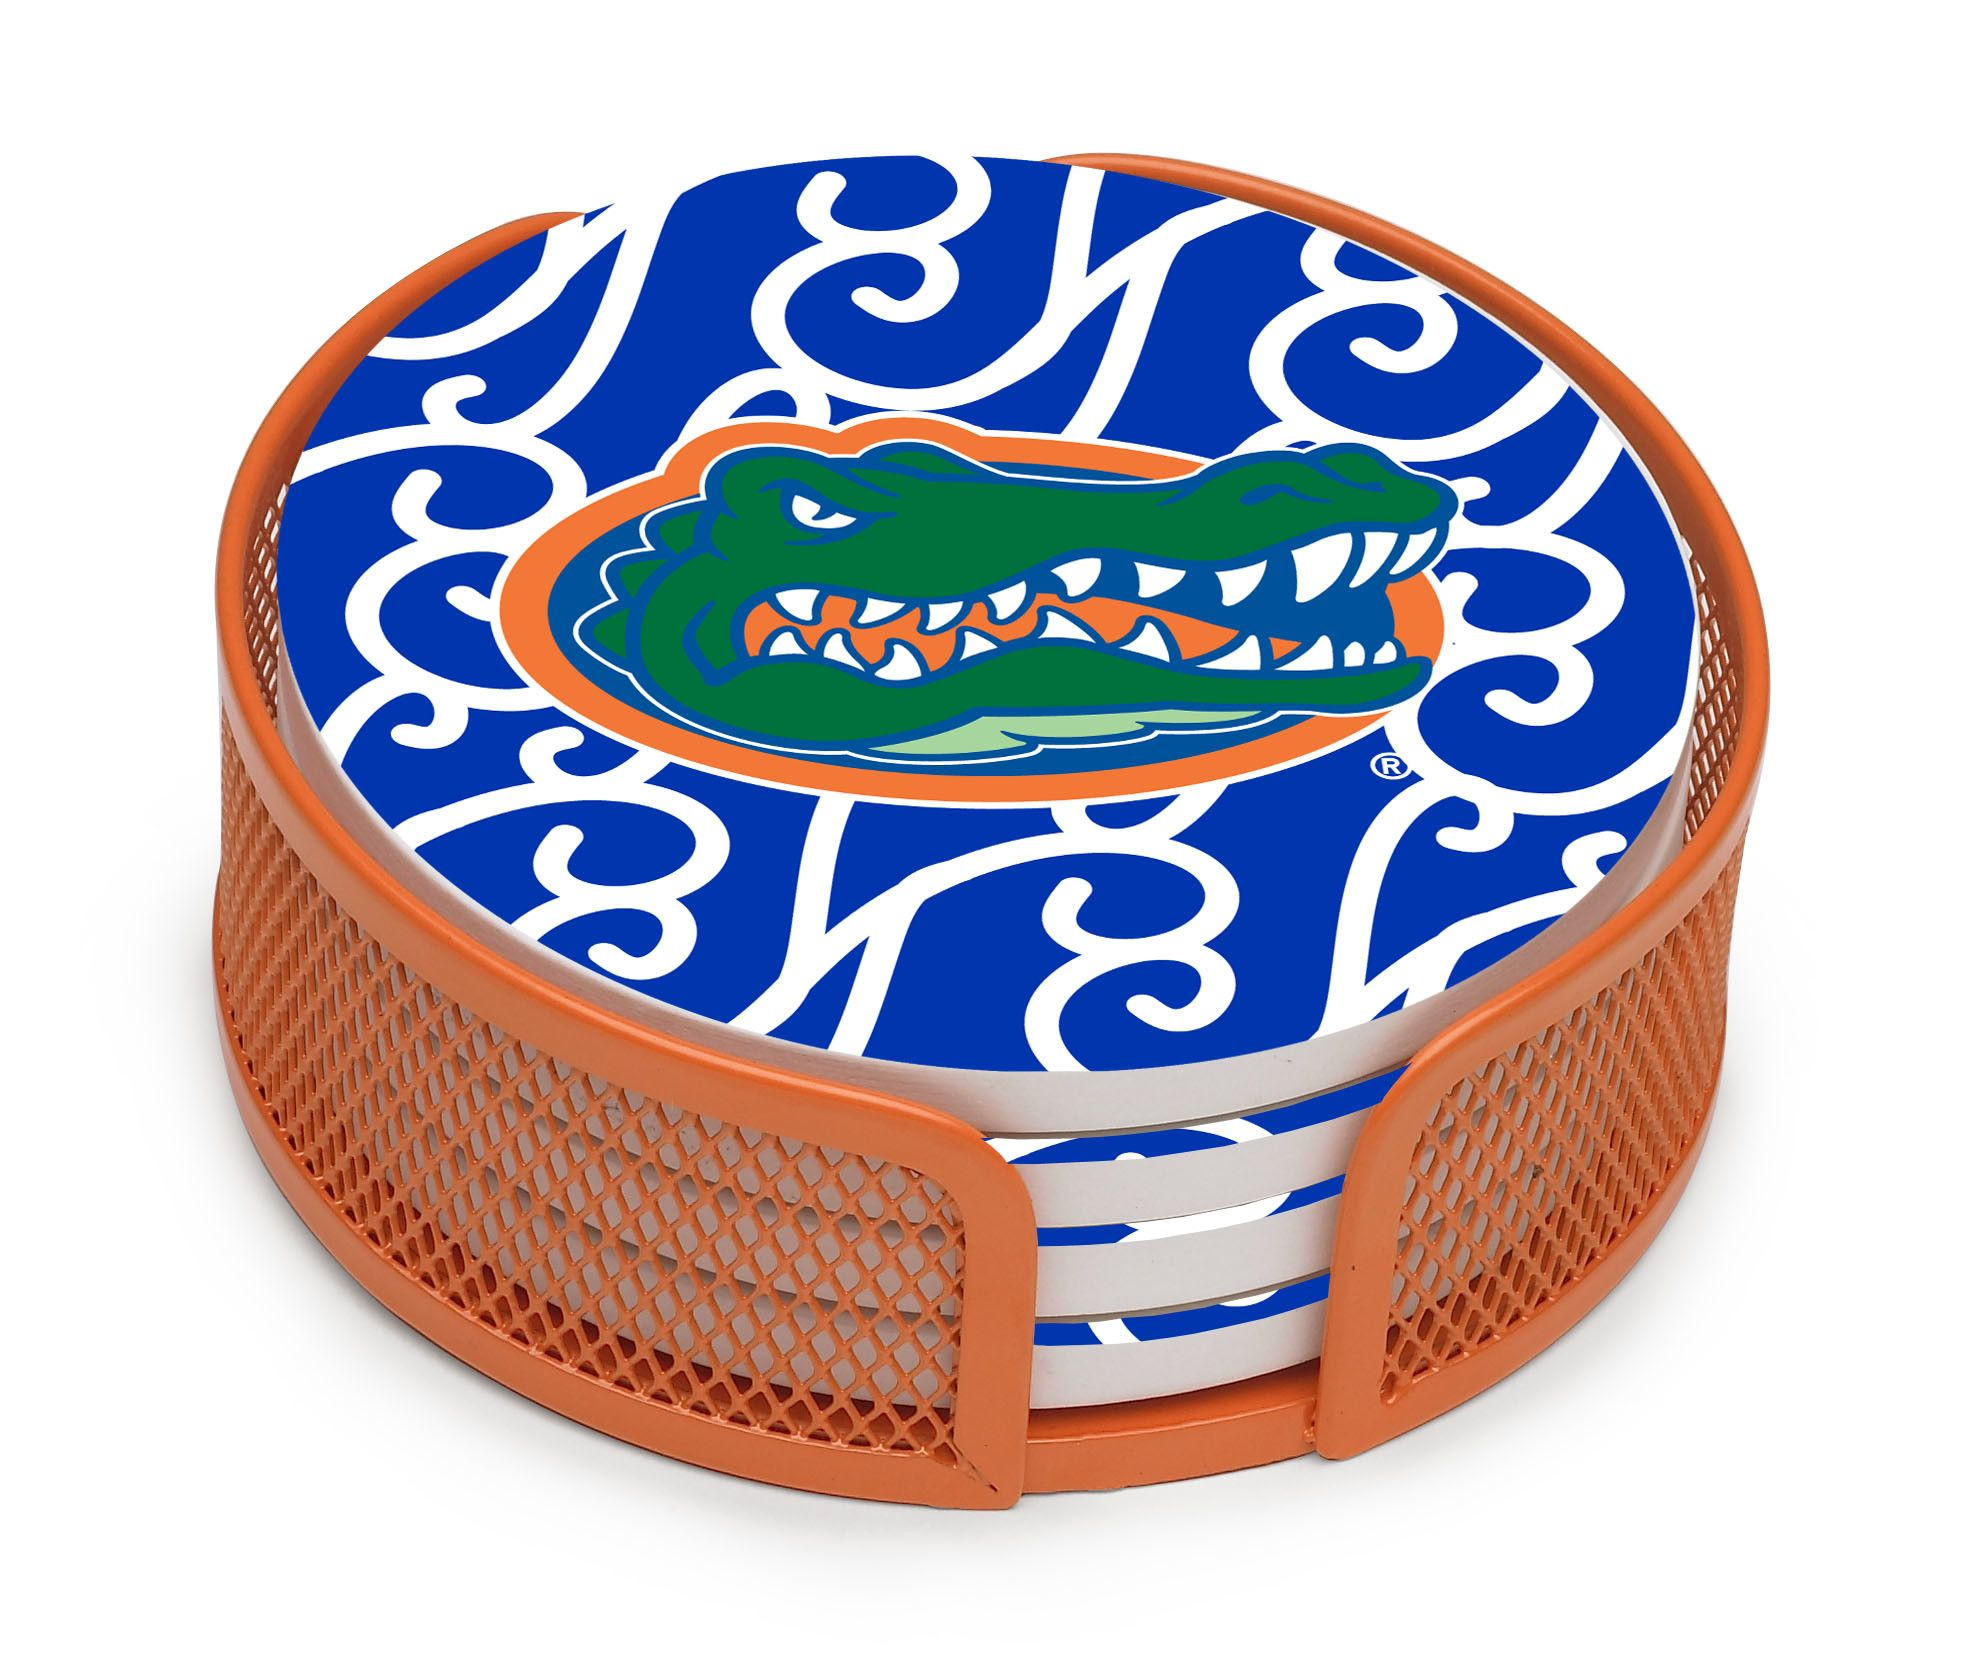 University Of Florida Swirls Collegiate Gift Set 5 Piece Coaster Set With Holder Coaster Gift Set Coaster Set Unique Coasters